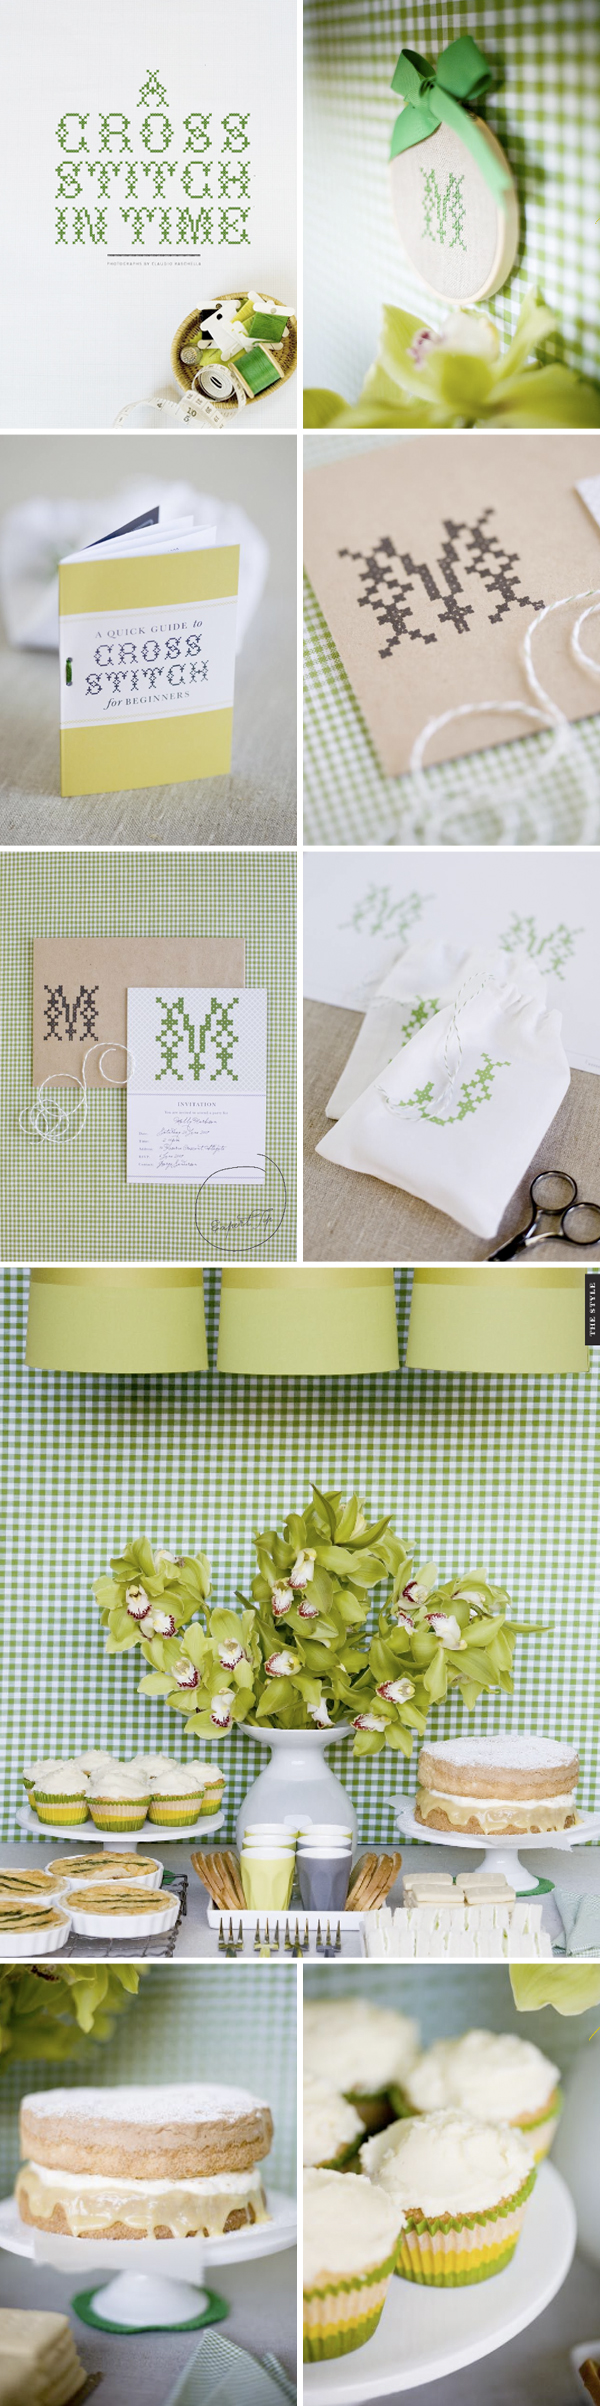 gingham wedding details